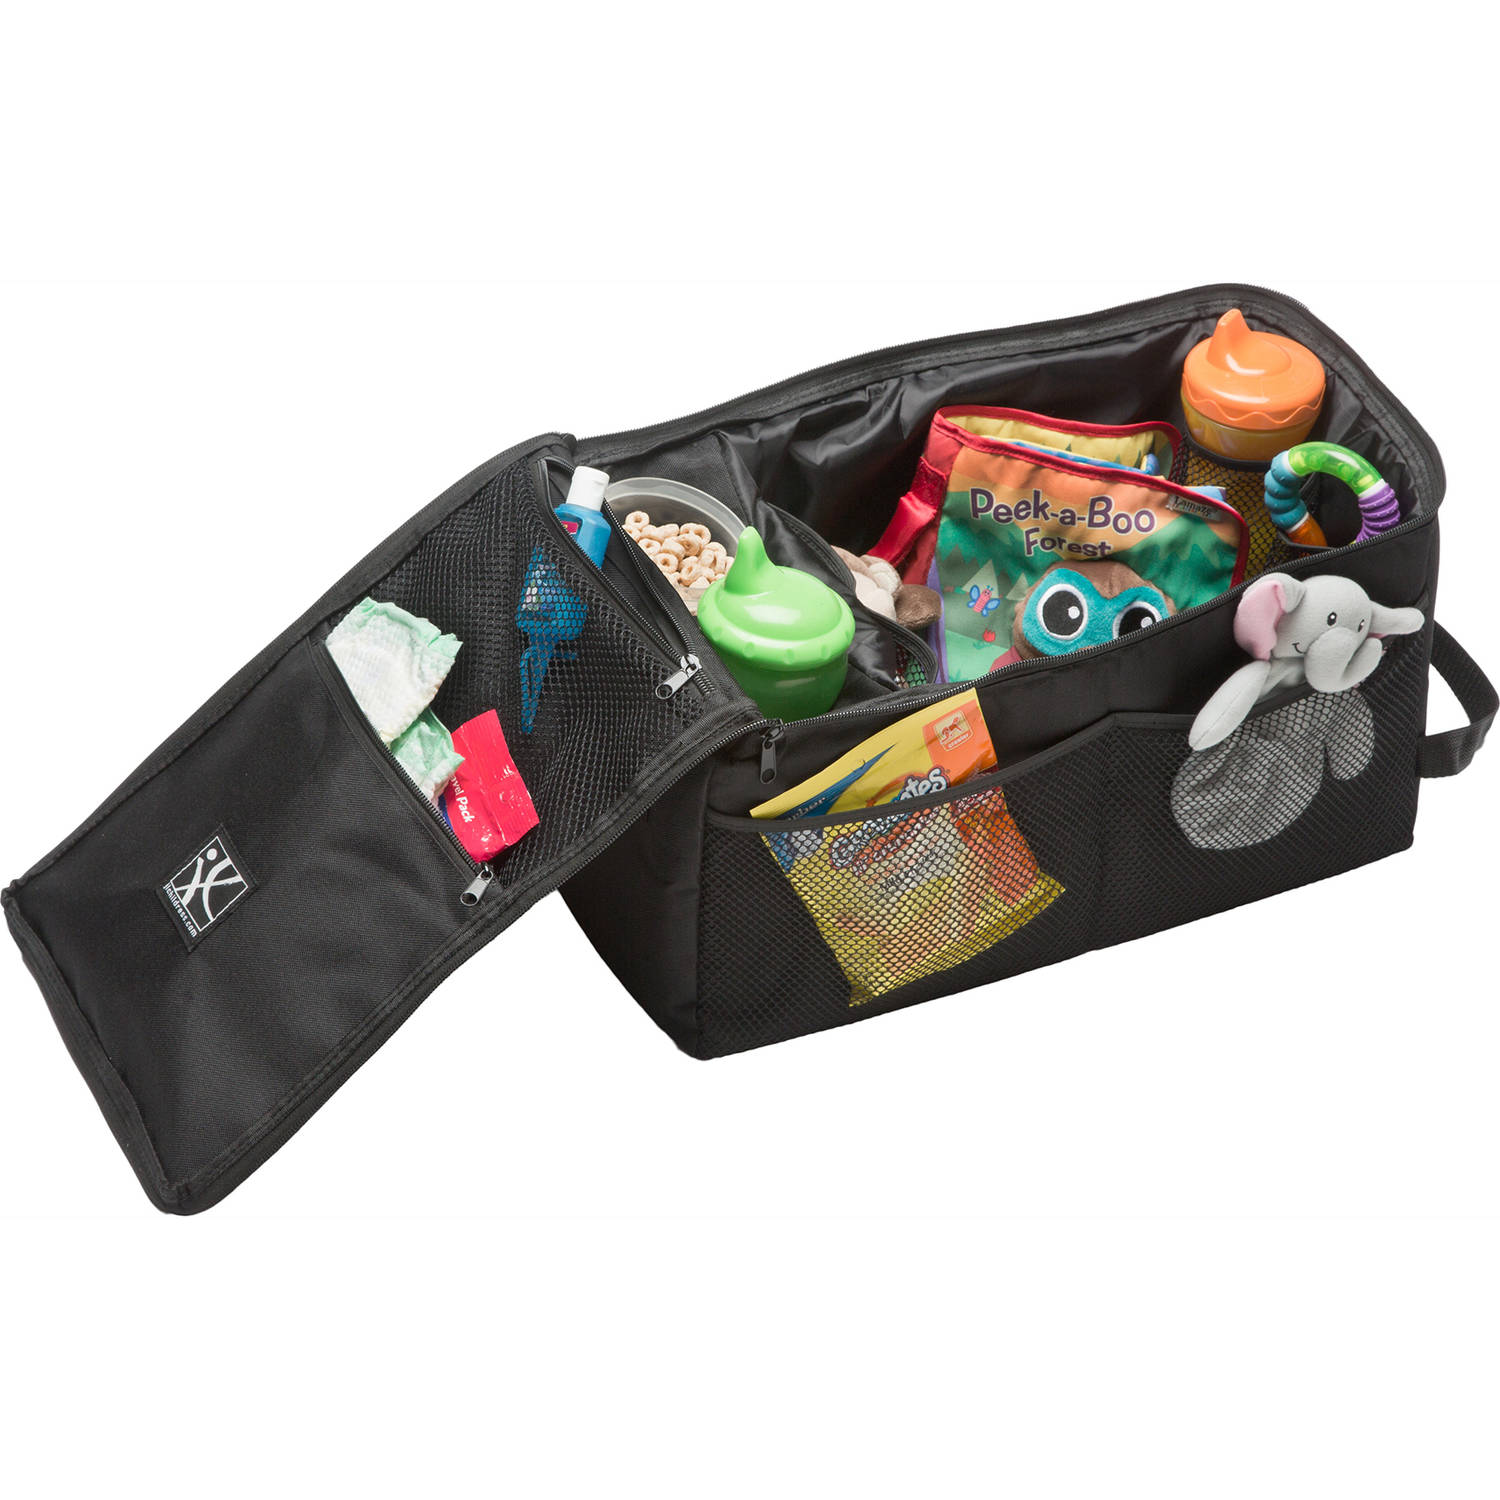 J.L. Childress Backseat Butler Car Backseat and Trunk Organizer